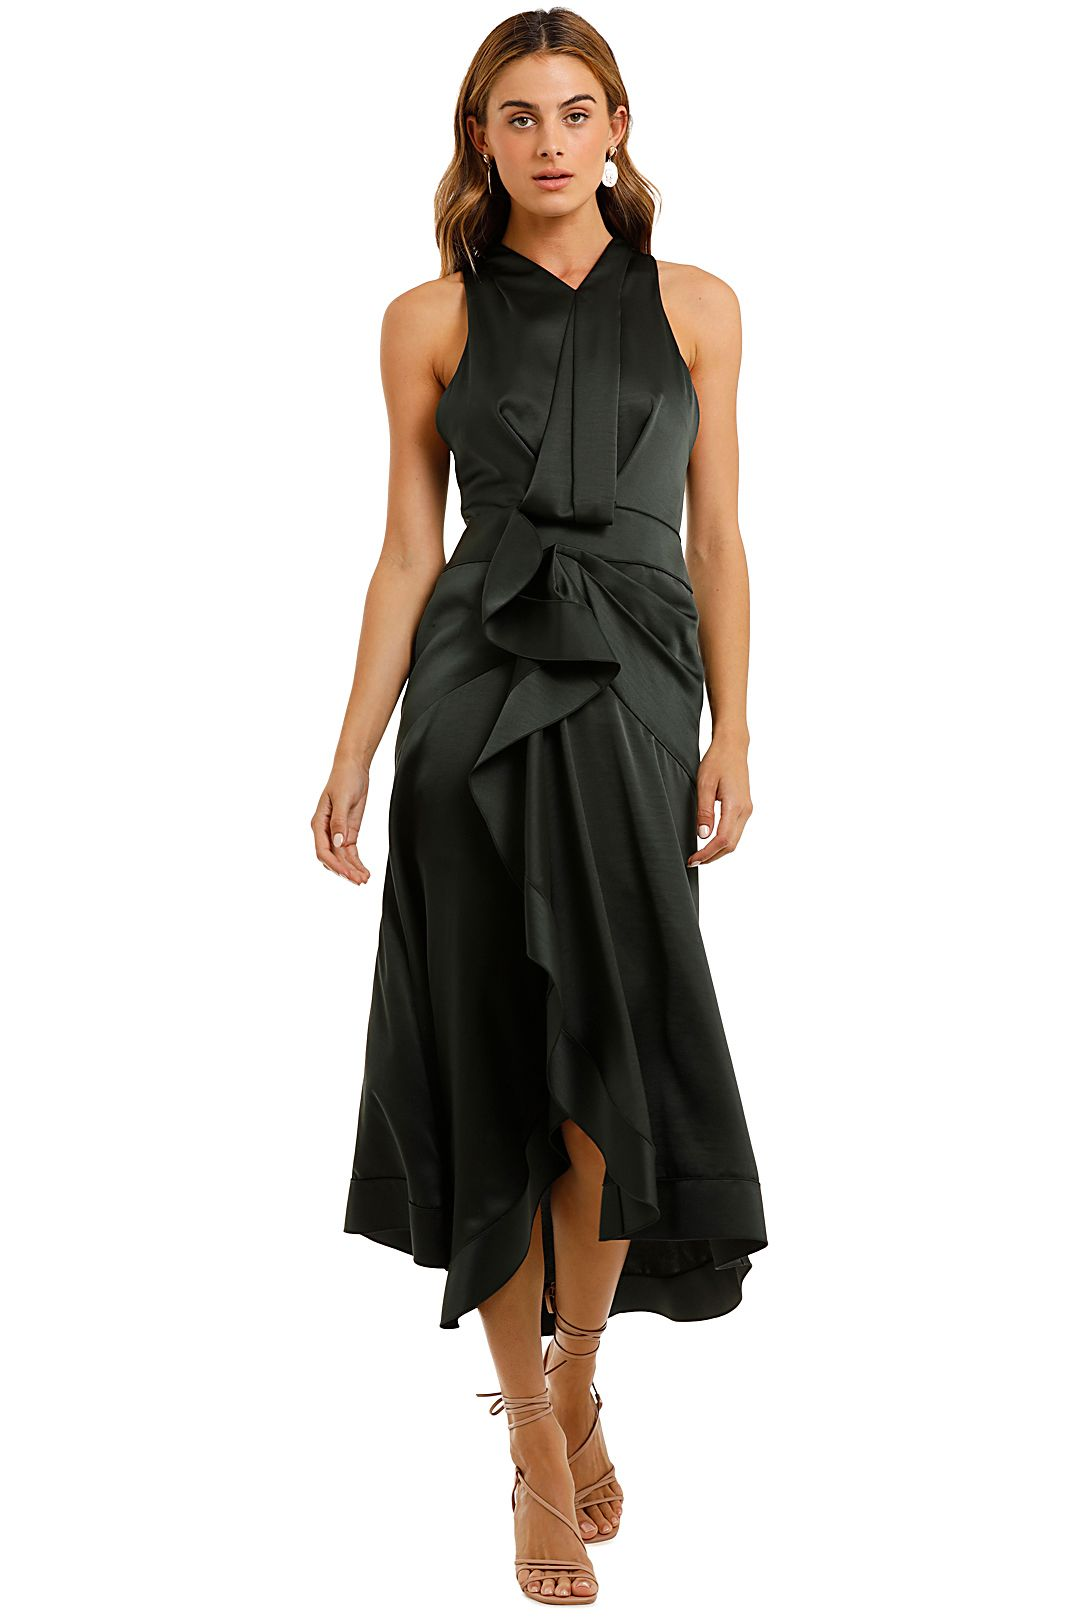 Acler Millbank Dress Forest Green